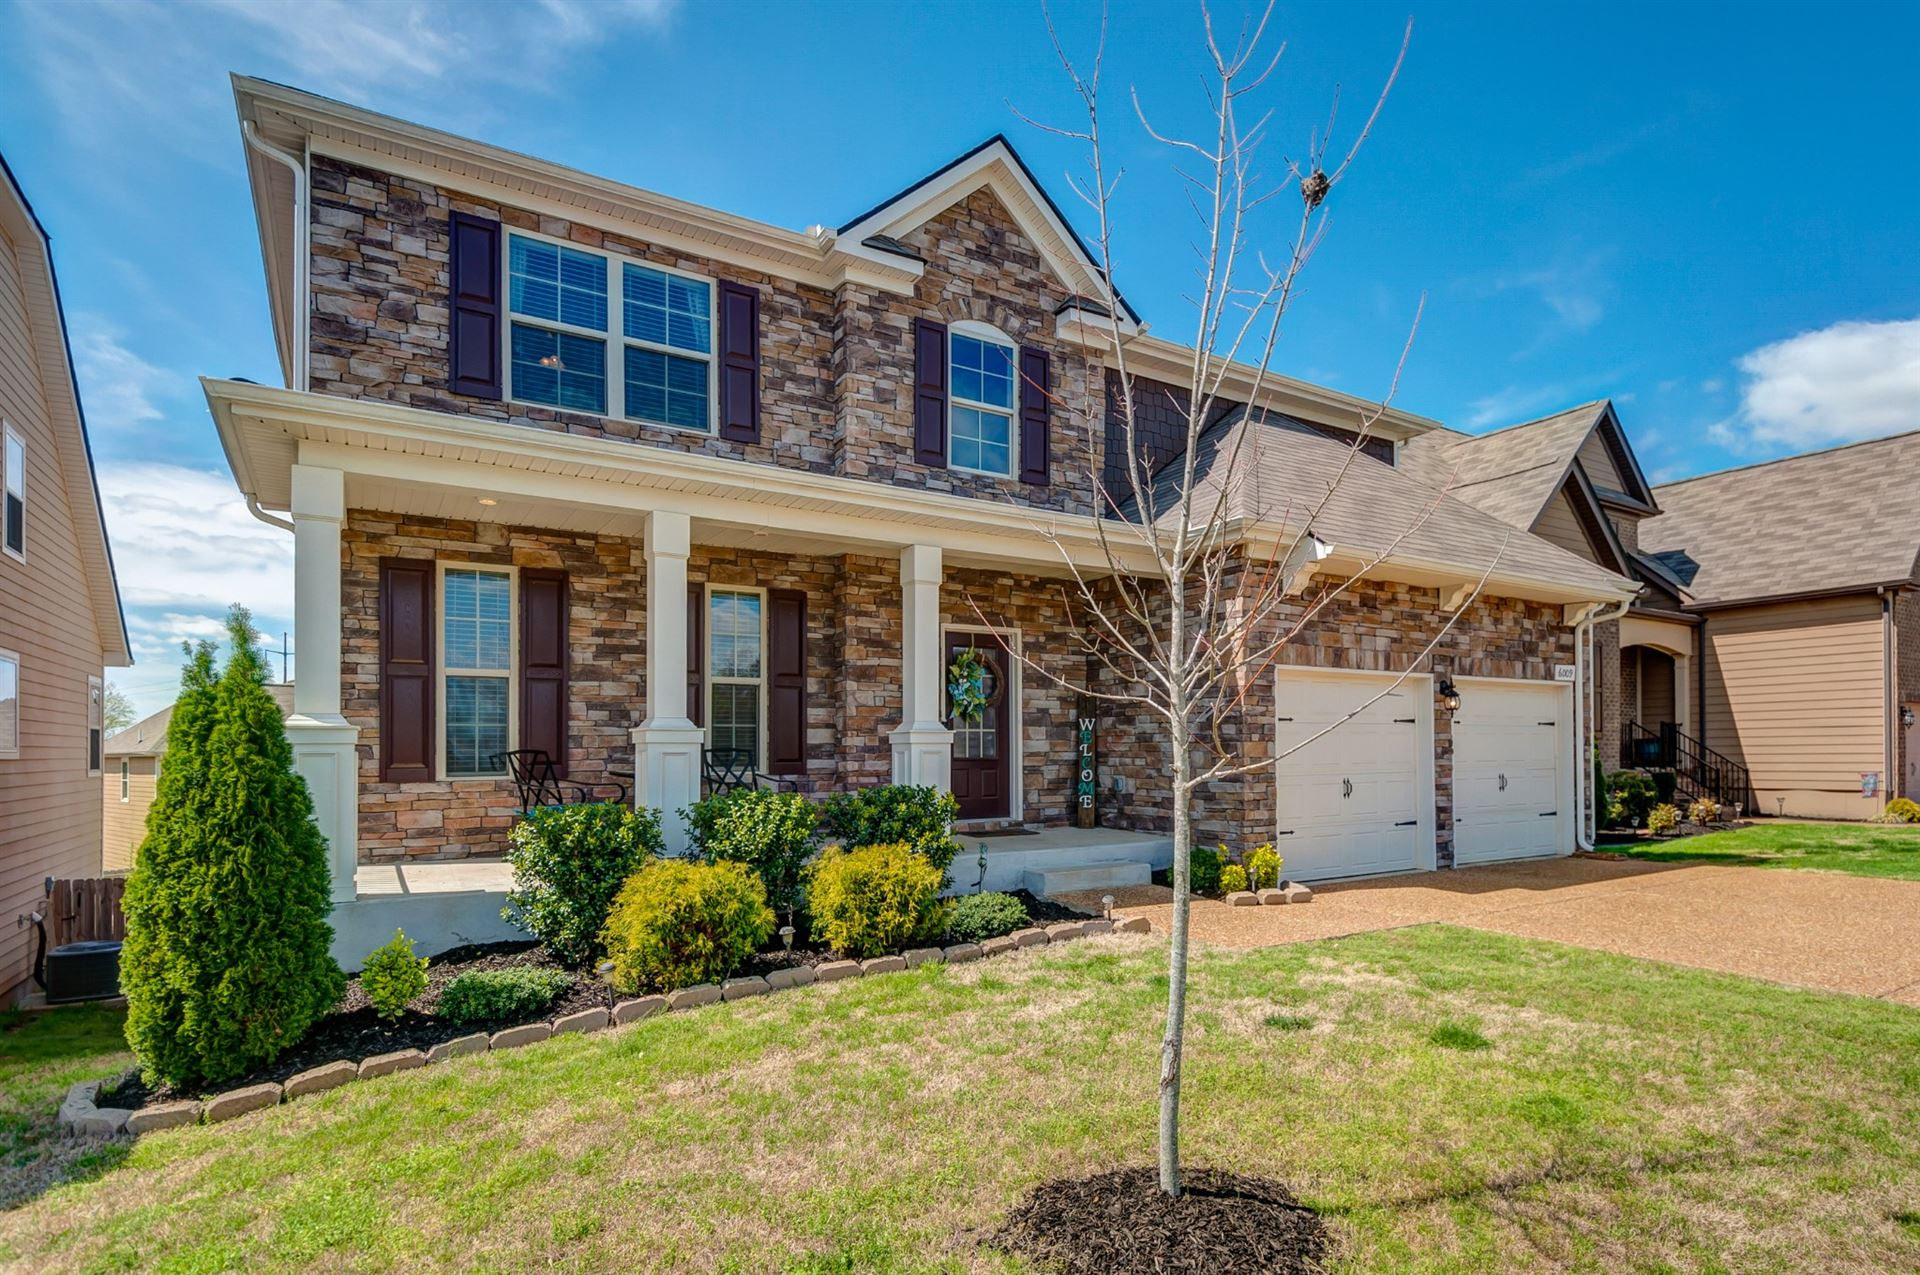 Photo of 6009 Aaron Dr, Spring Hill, TN 37174 (MLS # 2137544)